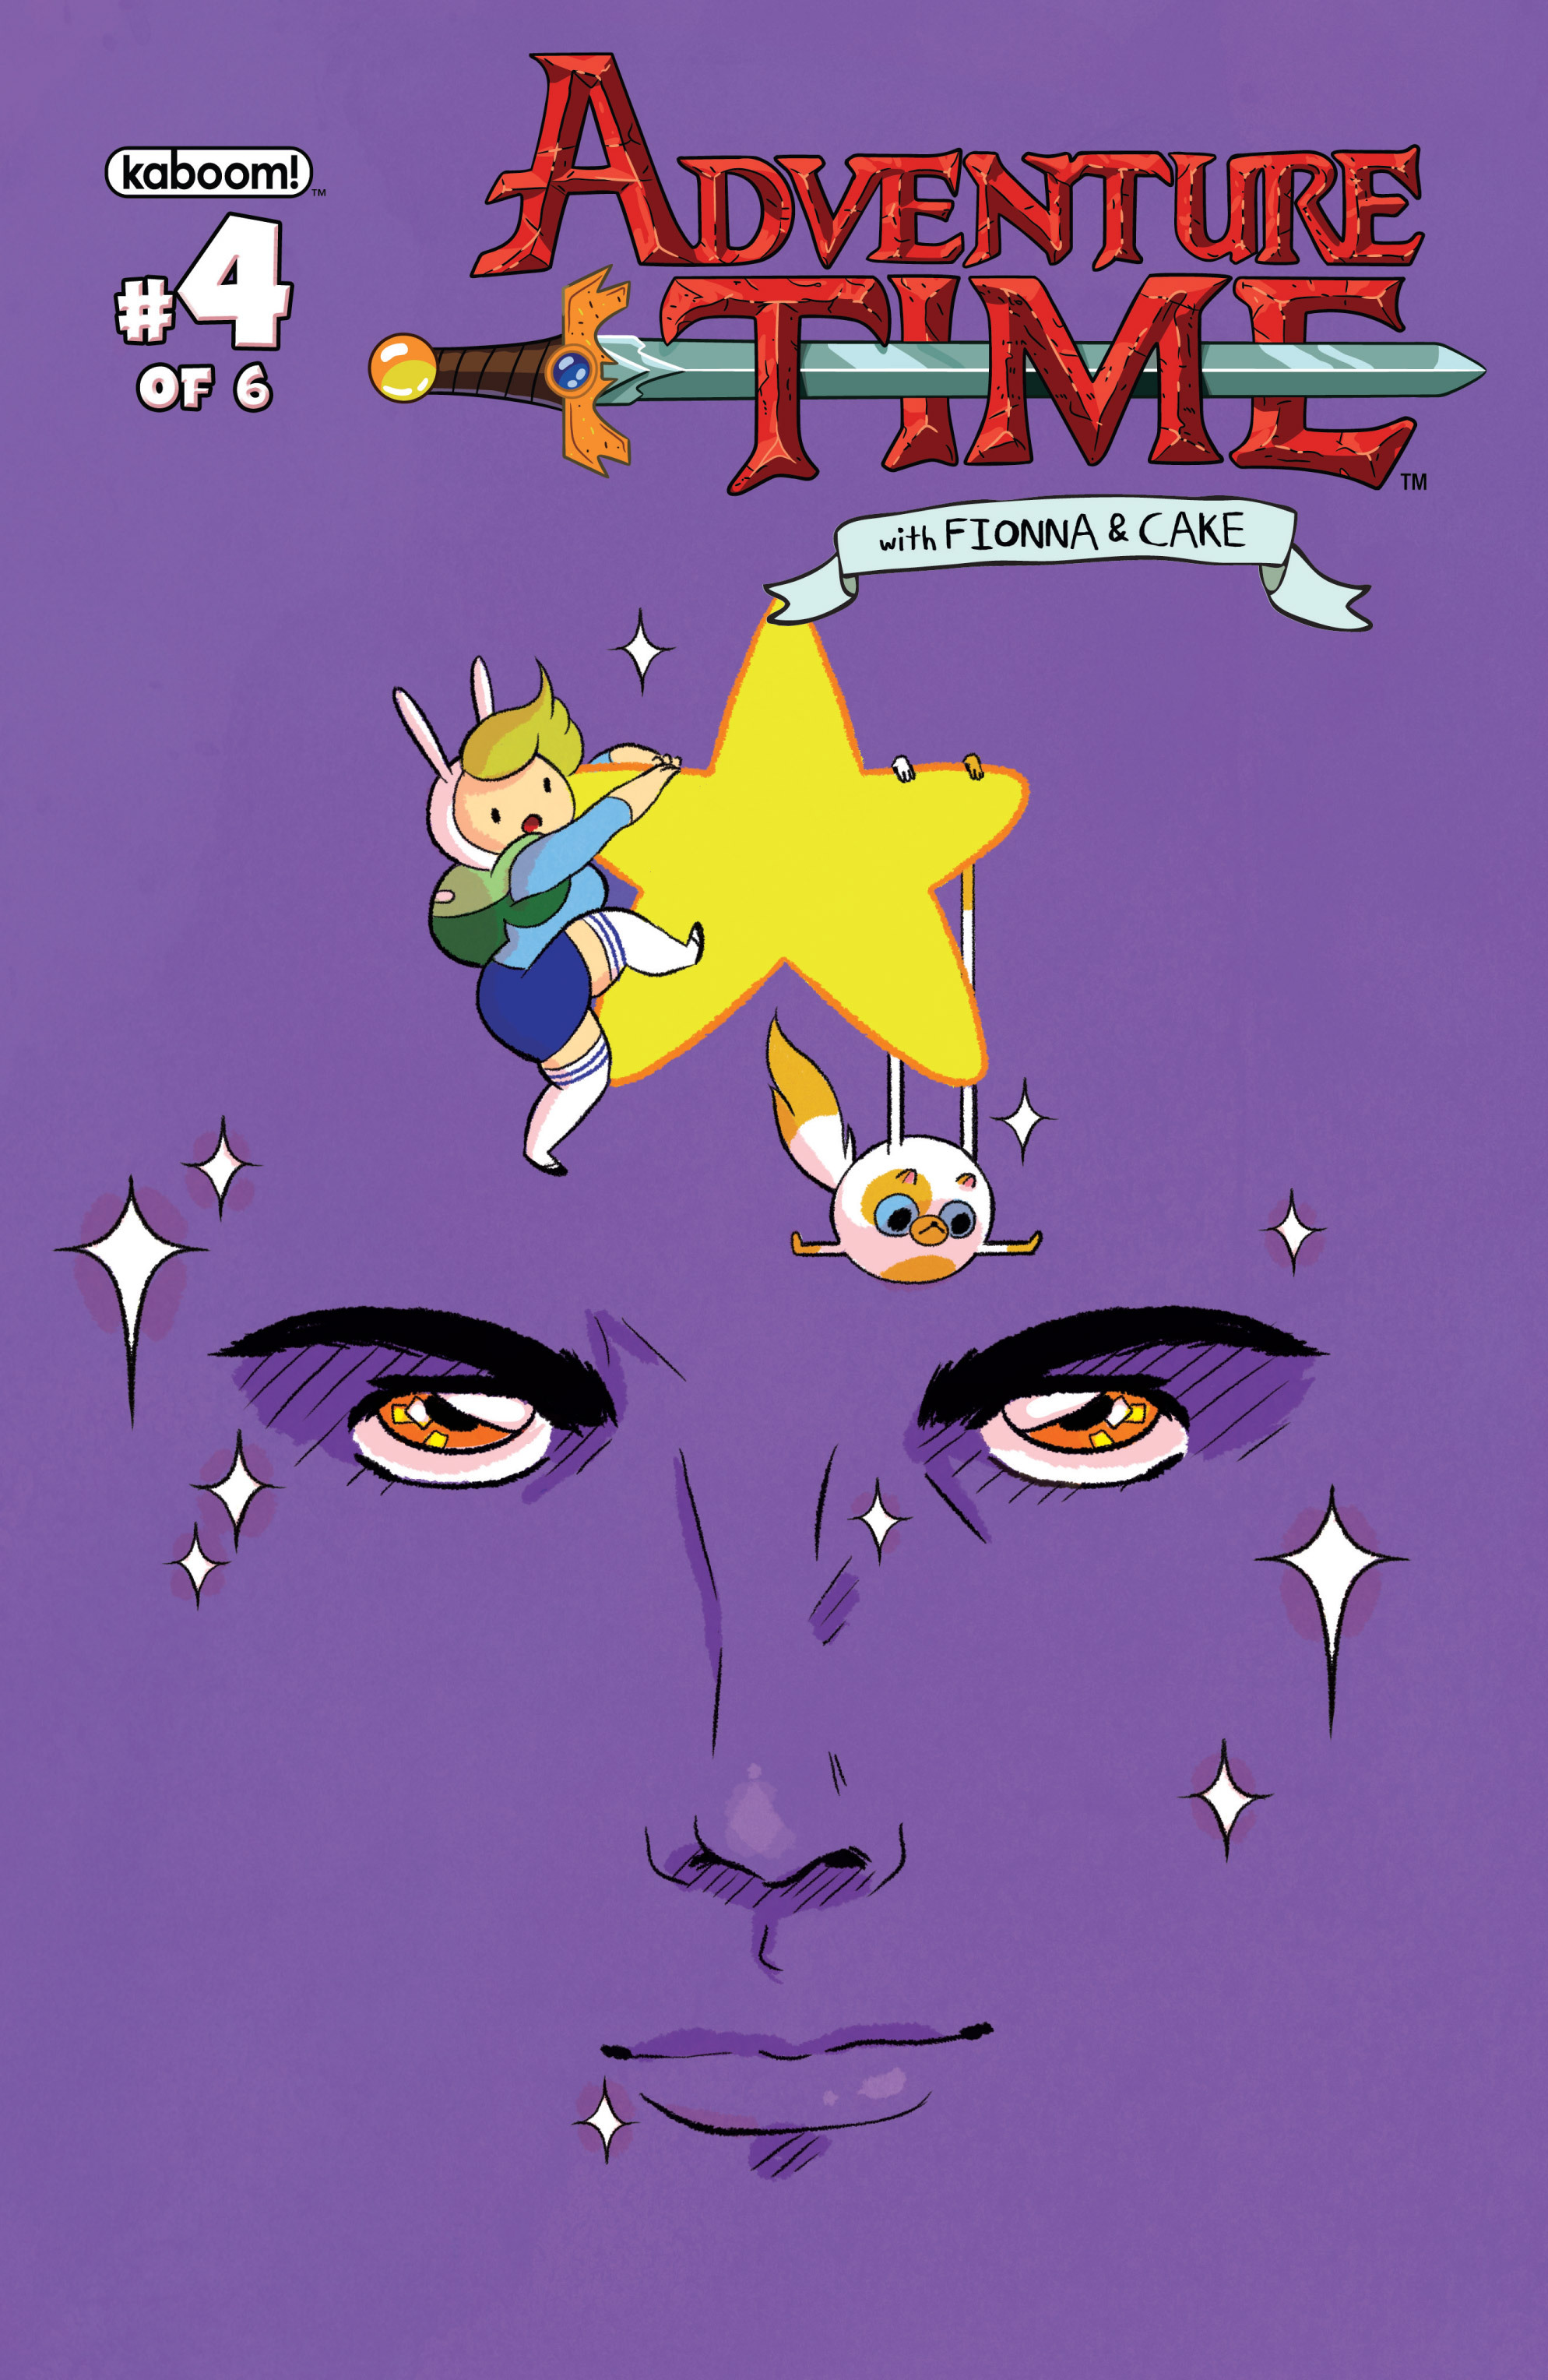 Read online Adventure Time with Fionna & Cake comic -  Issue #4 - 1